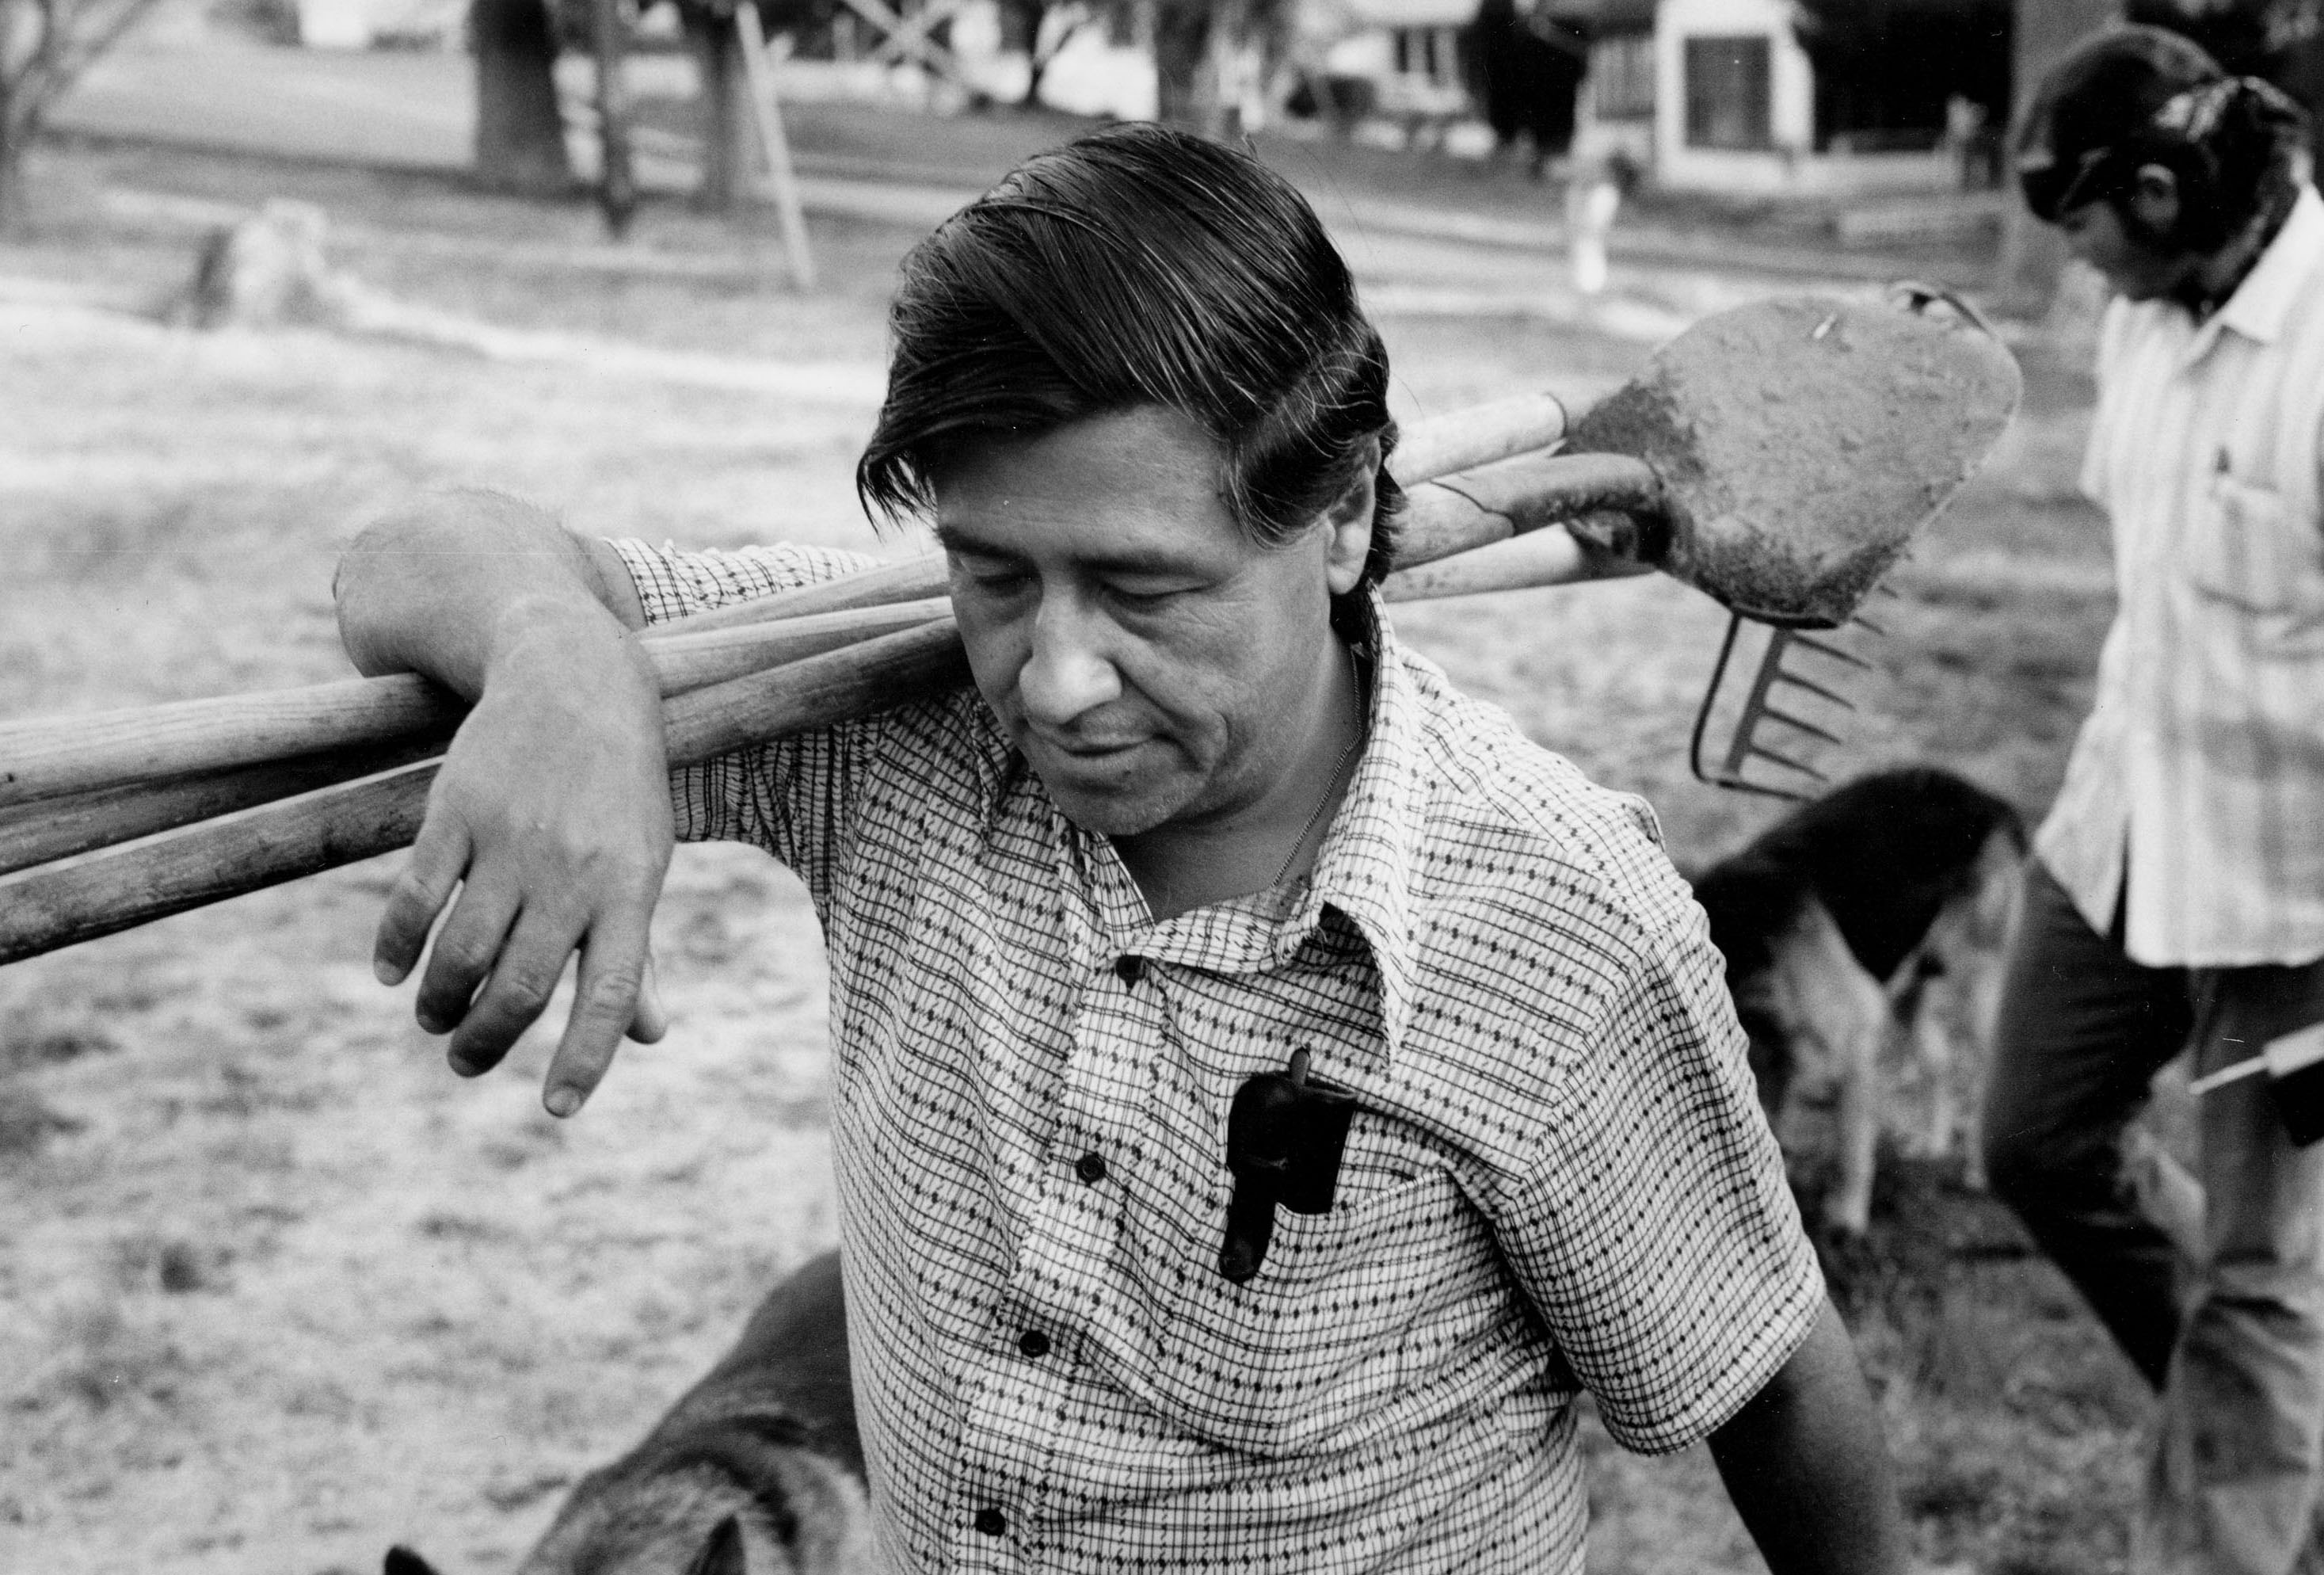 Cesar Chavez: Bill Eppridge, Photographer Who Captured RFK's Death, Dies